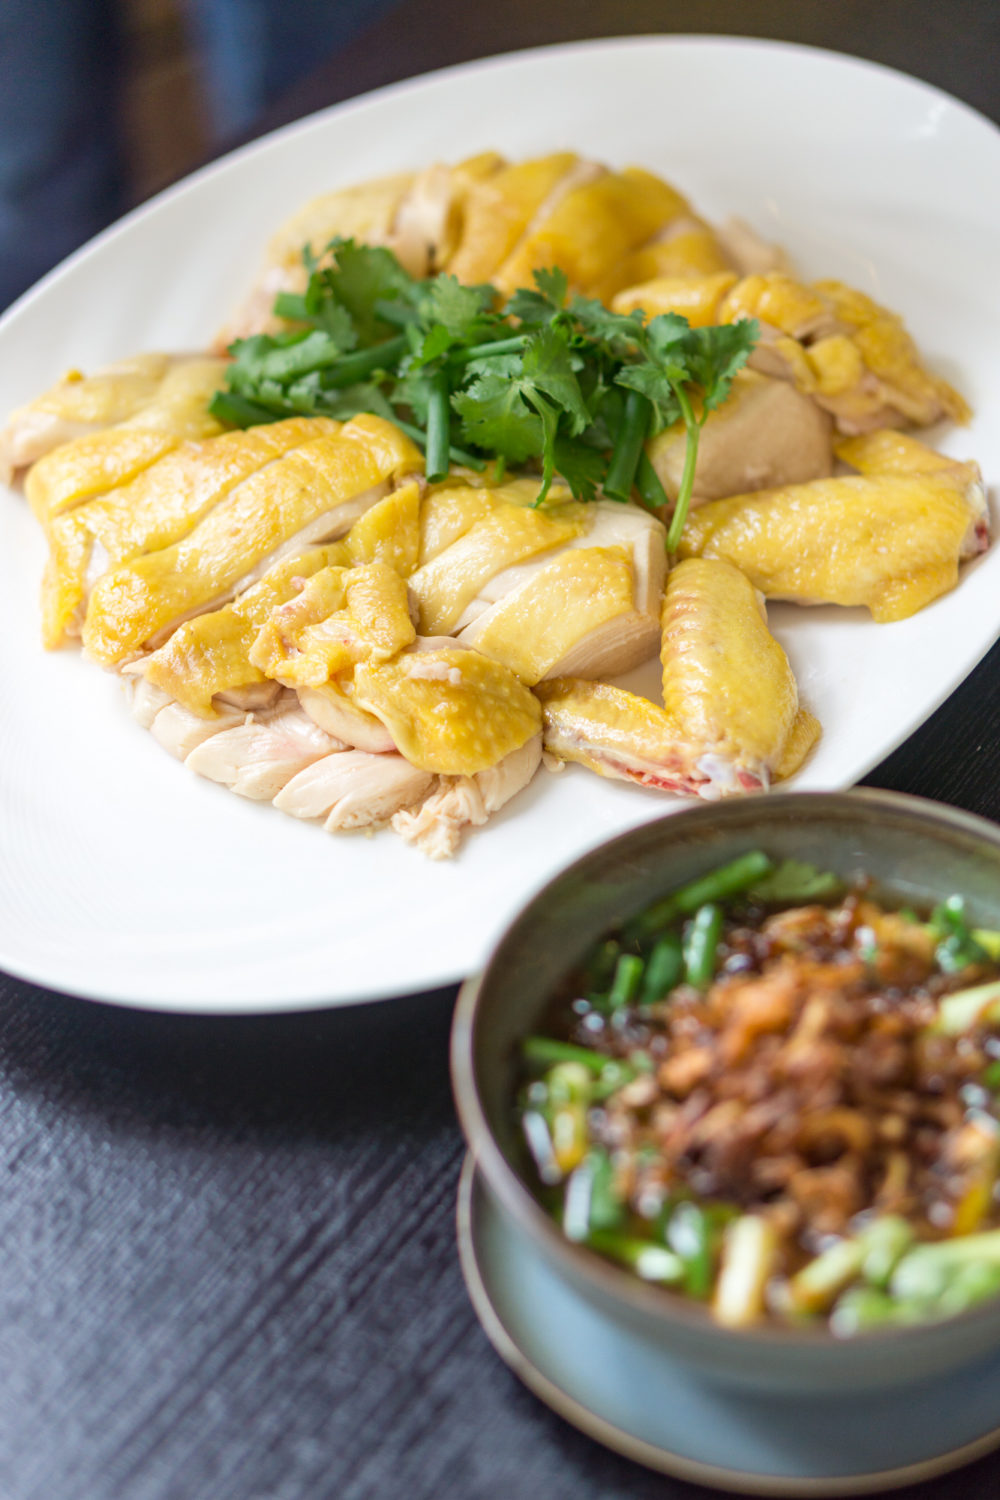 Chinese New Year 2018 - Racines, Sofitel Singapore City Centre - Slow-cooked French Corn-fed Chicken with Scallion Relish and Oyster Sauce